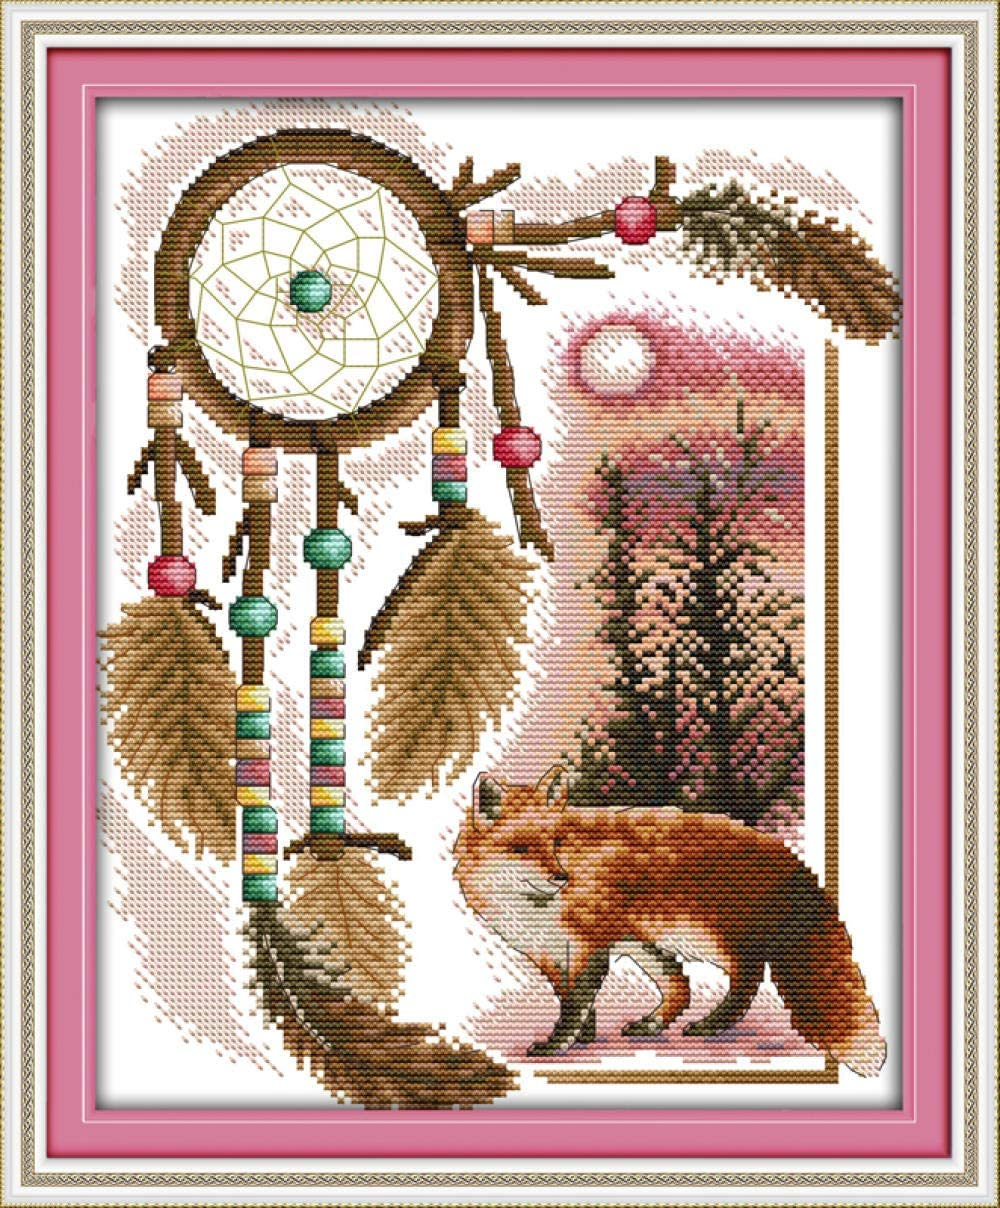 Stamped Cross Stitch Kits Long-awaited Forest Animals OFFicial site Cotton Inch 16X20 14Ct